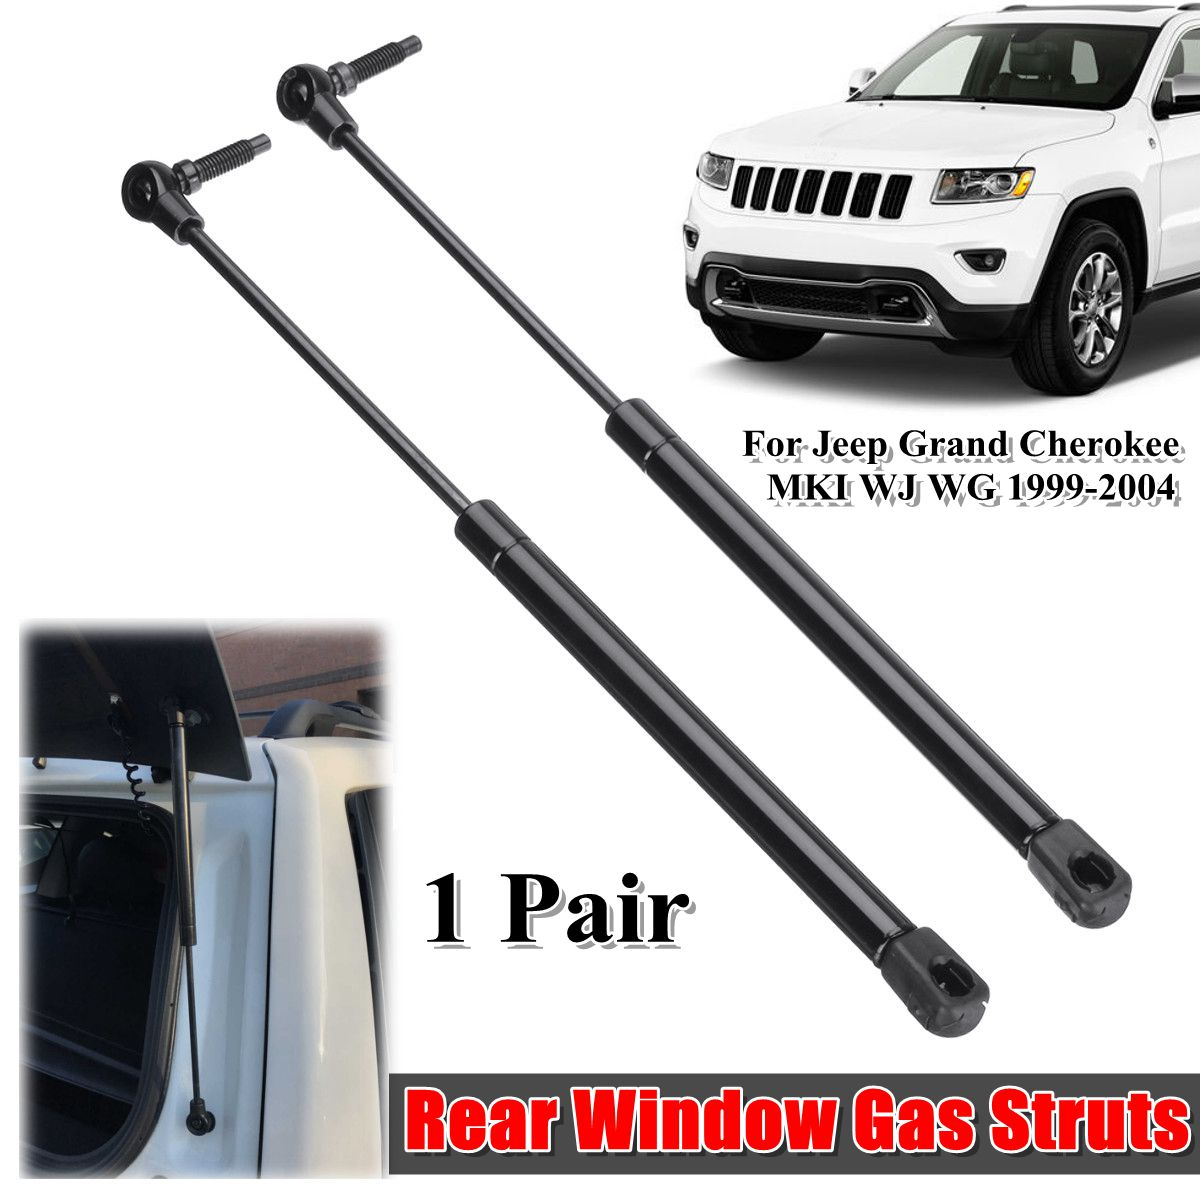 2 X Rear Window Glass Gas Struts Support Car Supports Shock For Jeep Grand Cherokee WJ WG 1999-2004